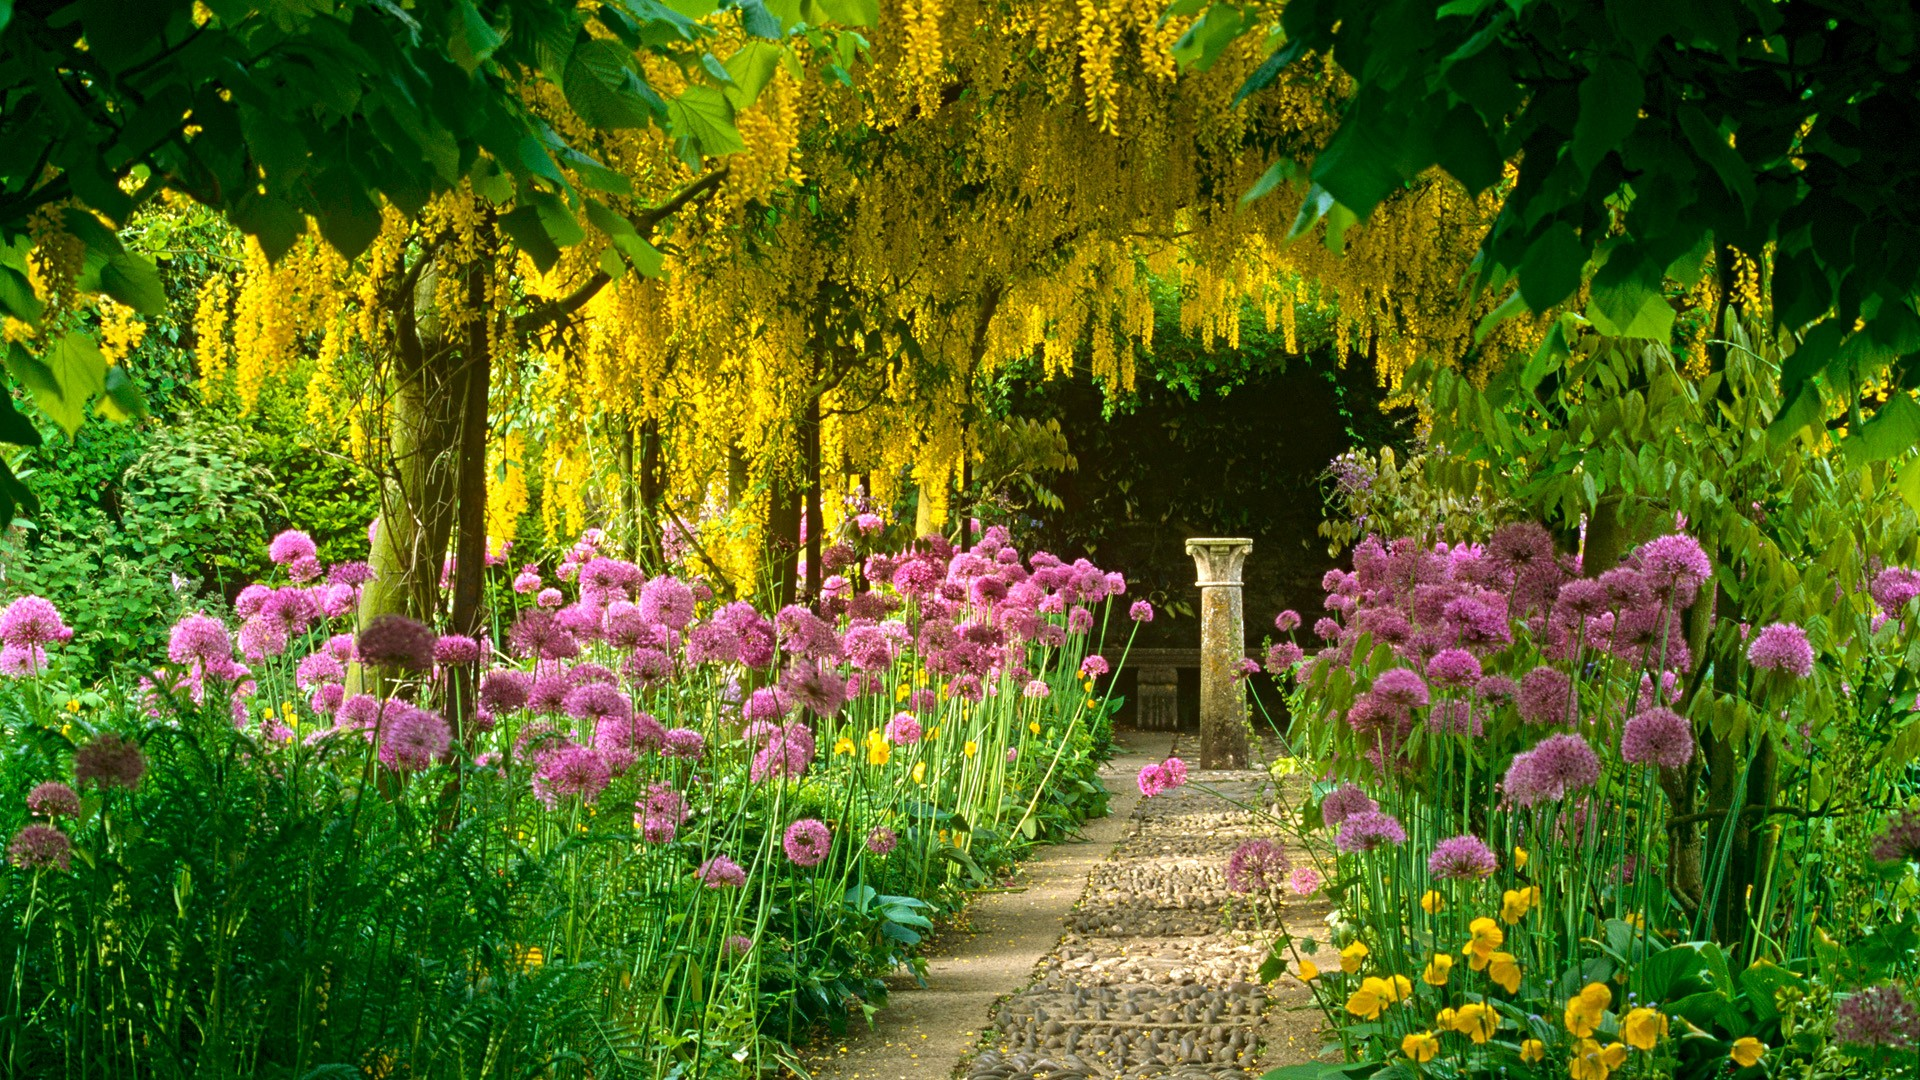 Hd wallpaper garden - Hd Wallpaper Garden 13